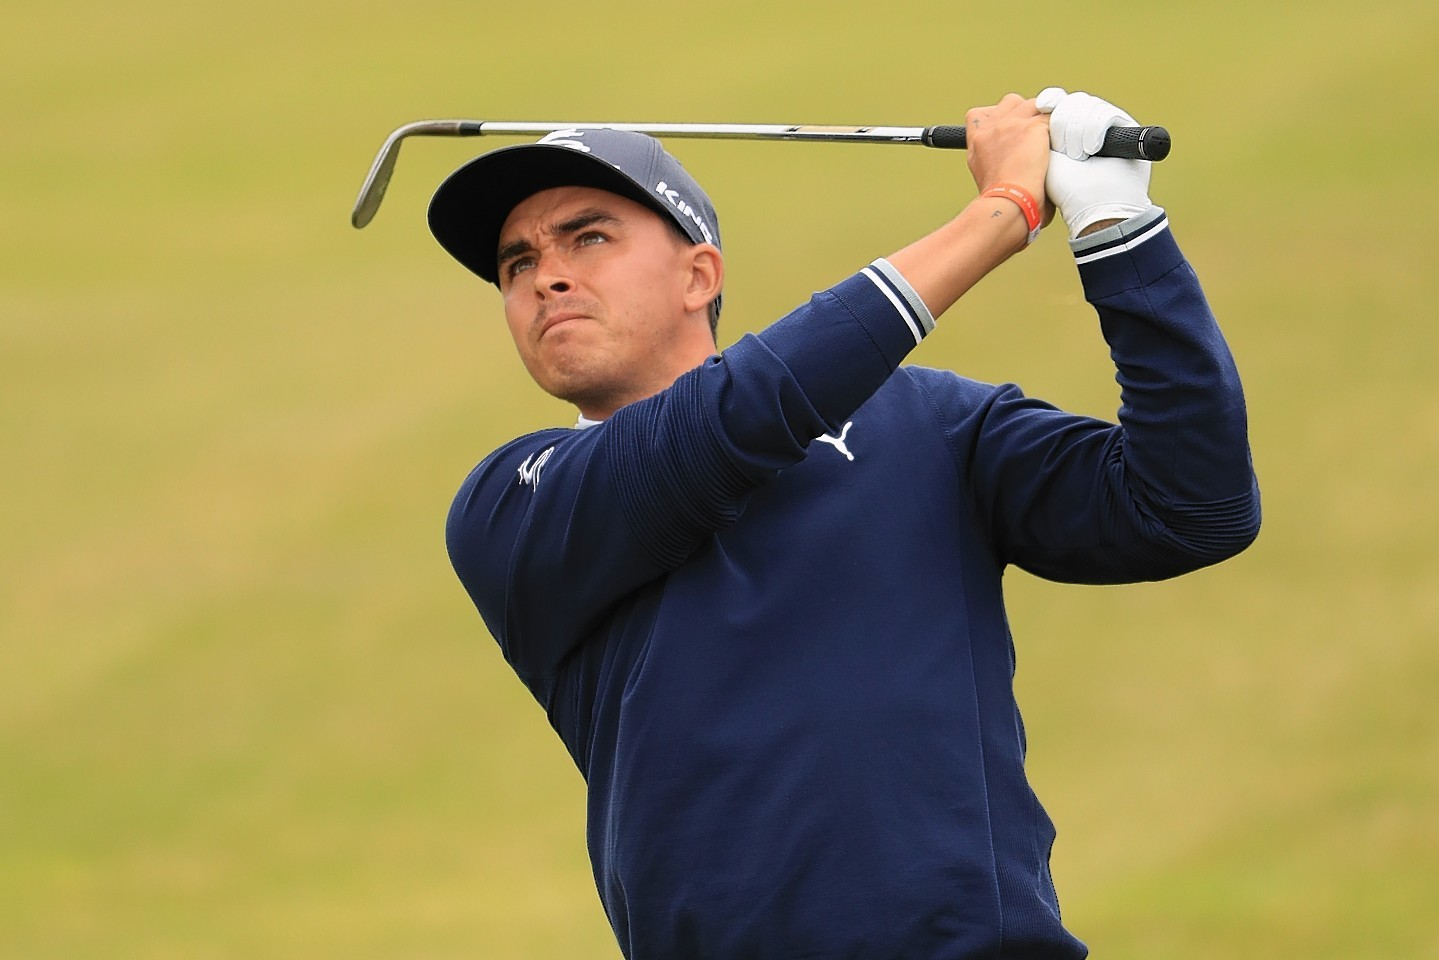 Rickie Fowler made a strong start at the Scottish Open.